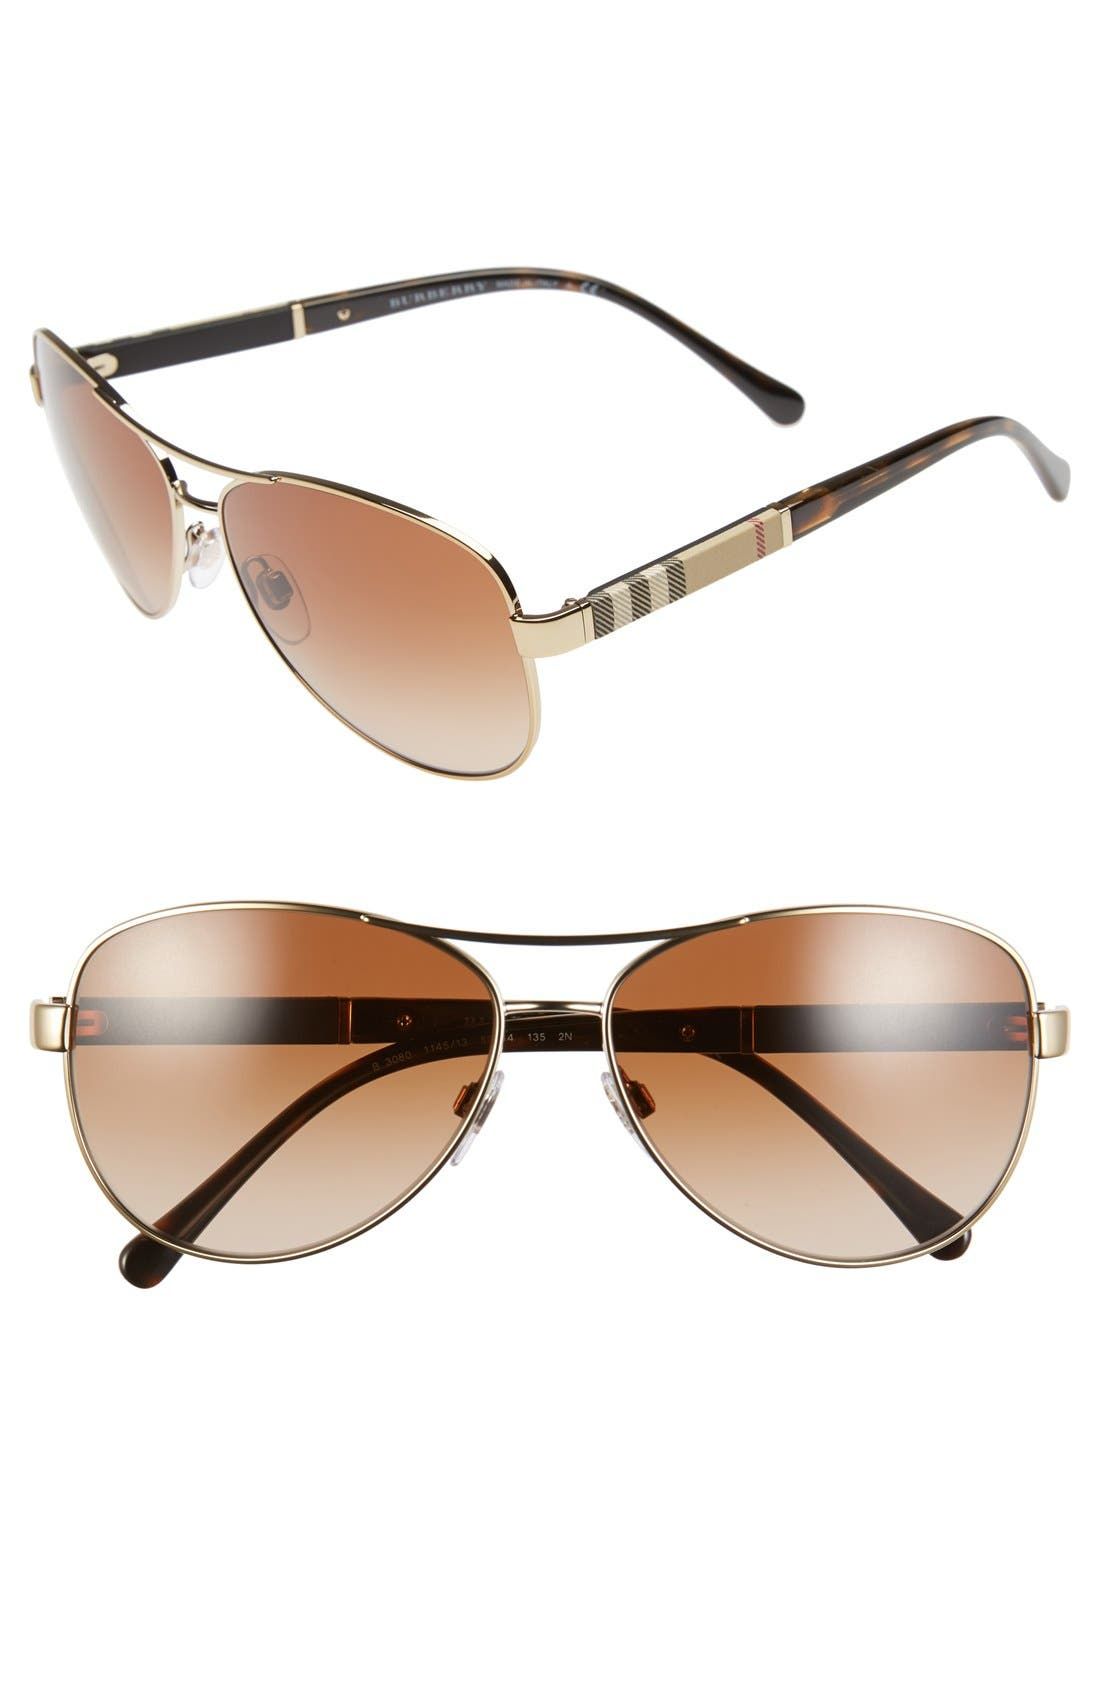 Burberry 59mm Aviator Sunglasses